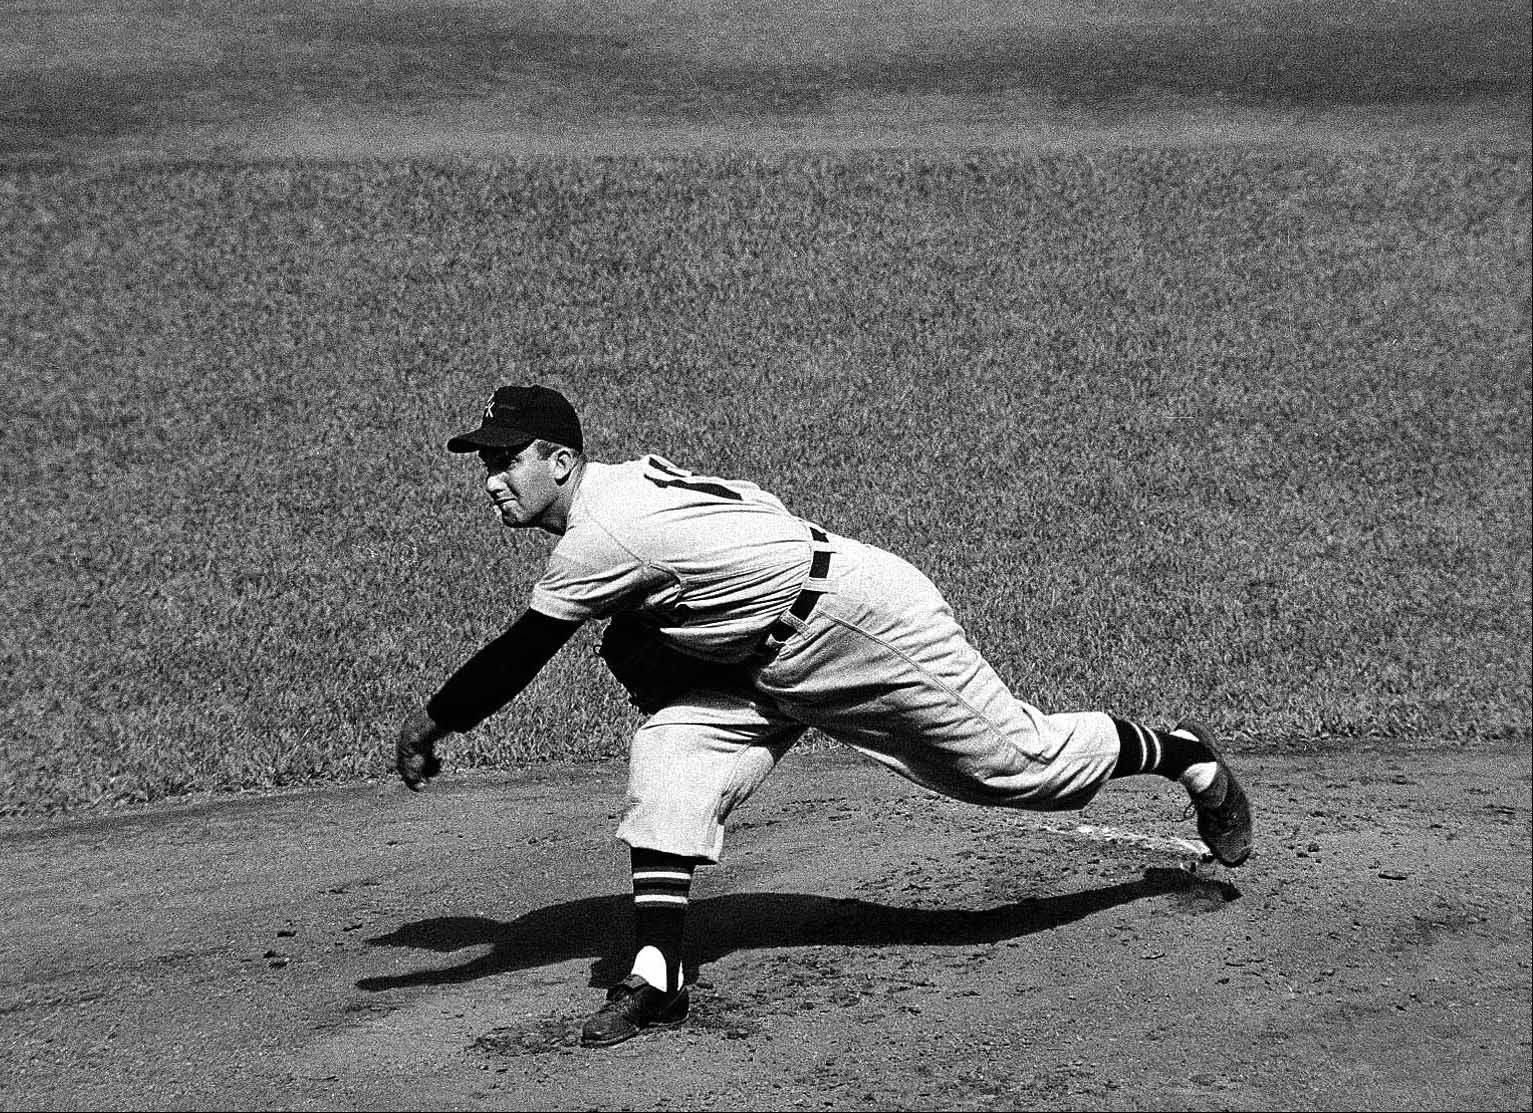 Chicago White Sox pitcher Billy Pierce is shown in action at Yankee Stadium, September 13, 1957.